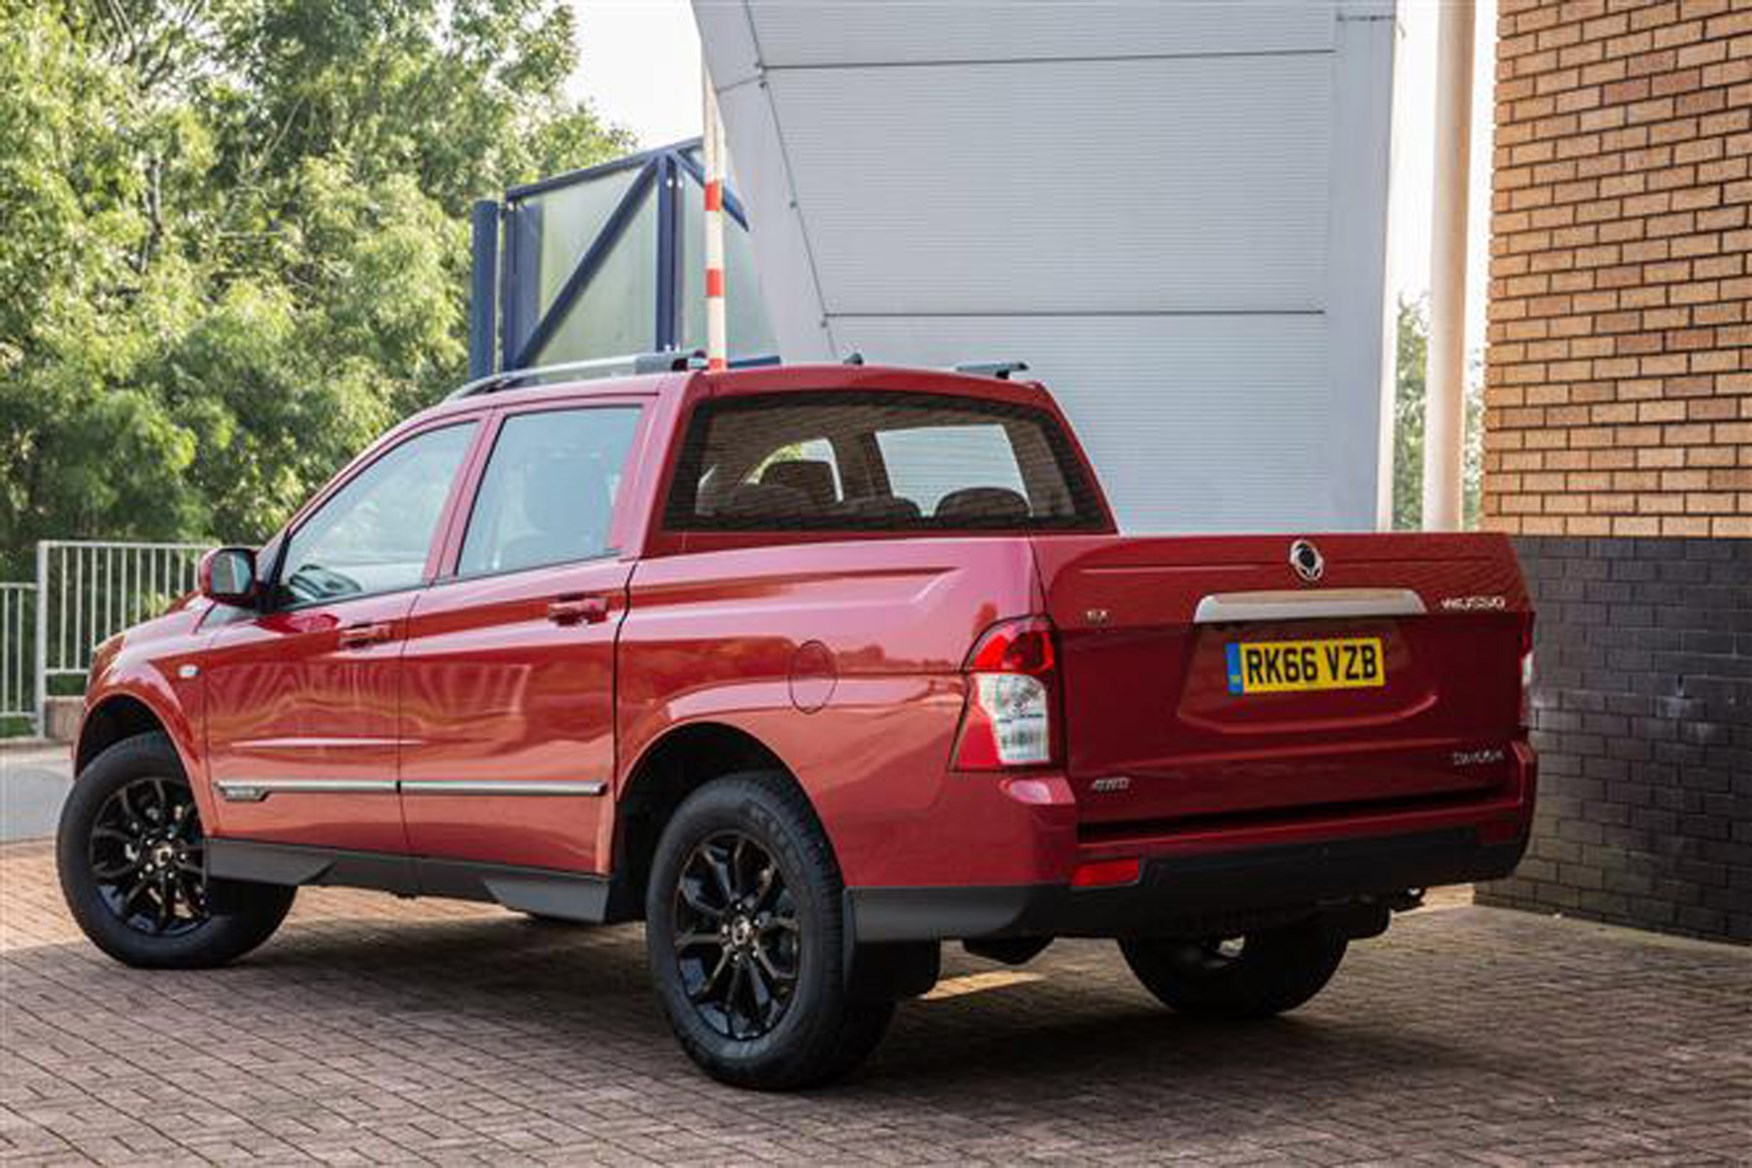 SsangYong Musso full review on Parkers Vans - load area